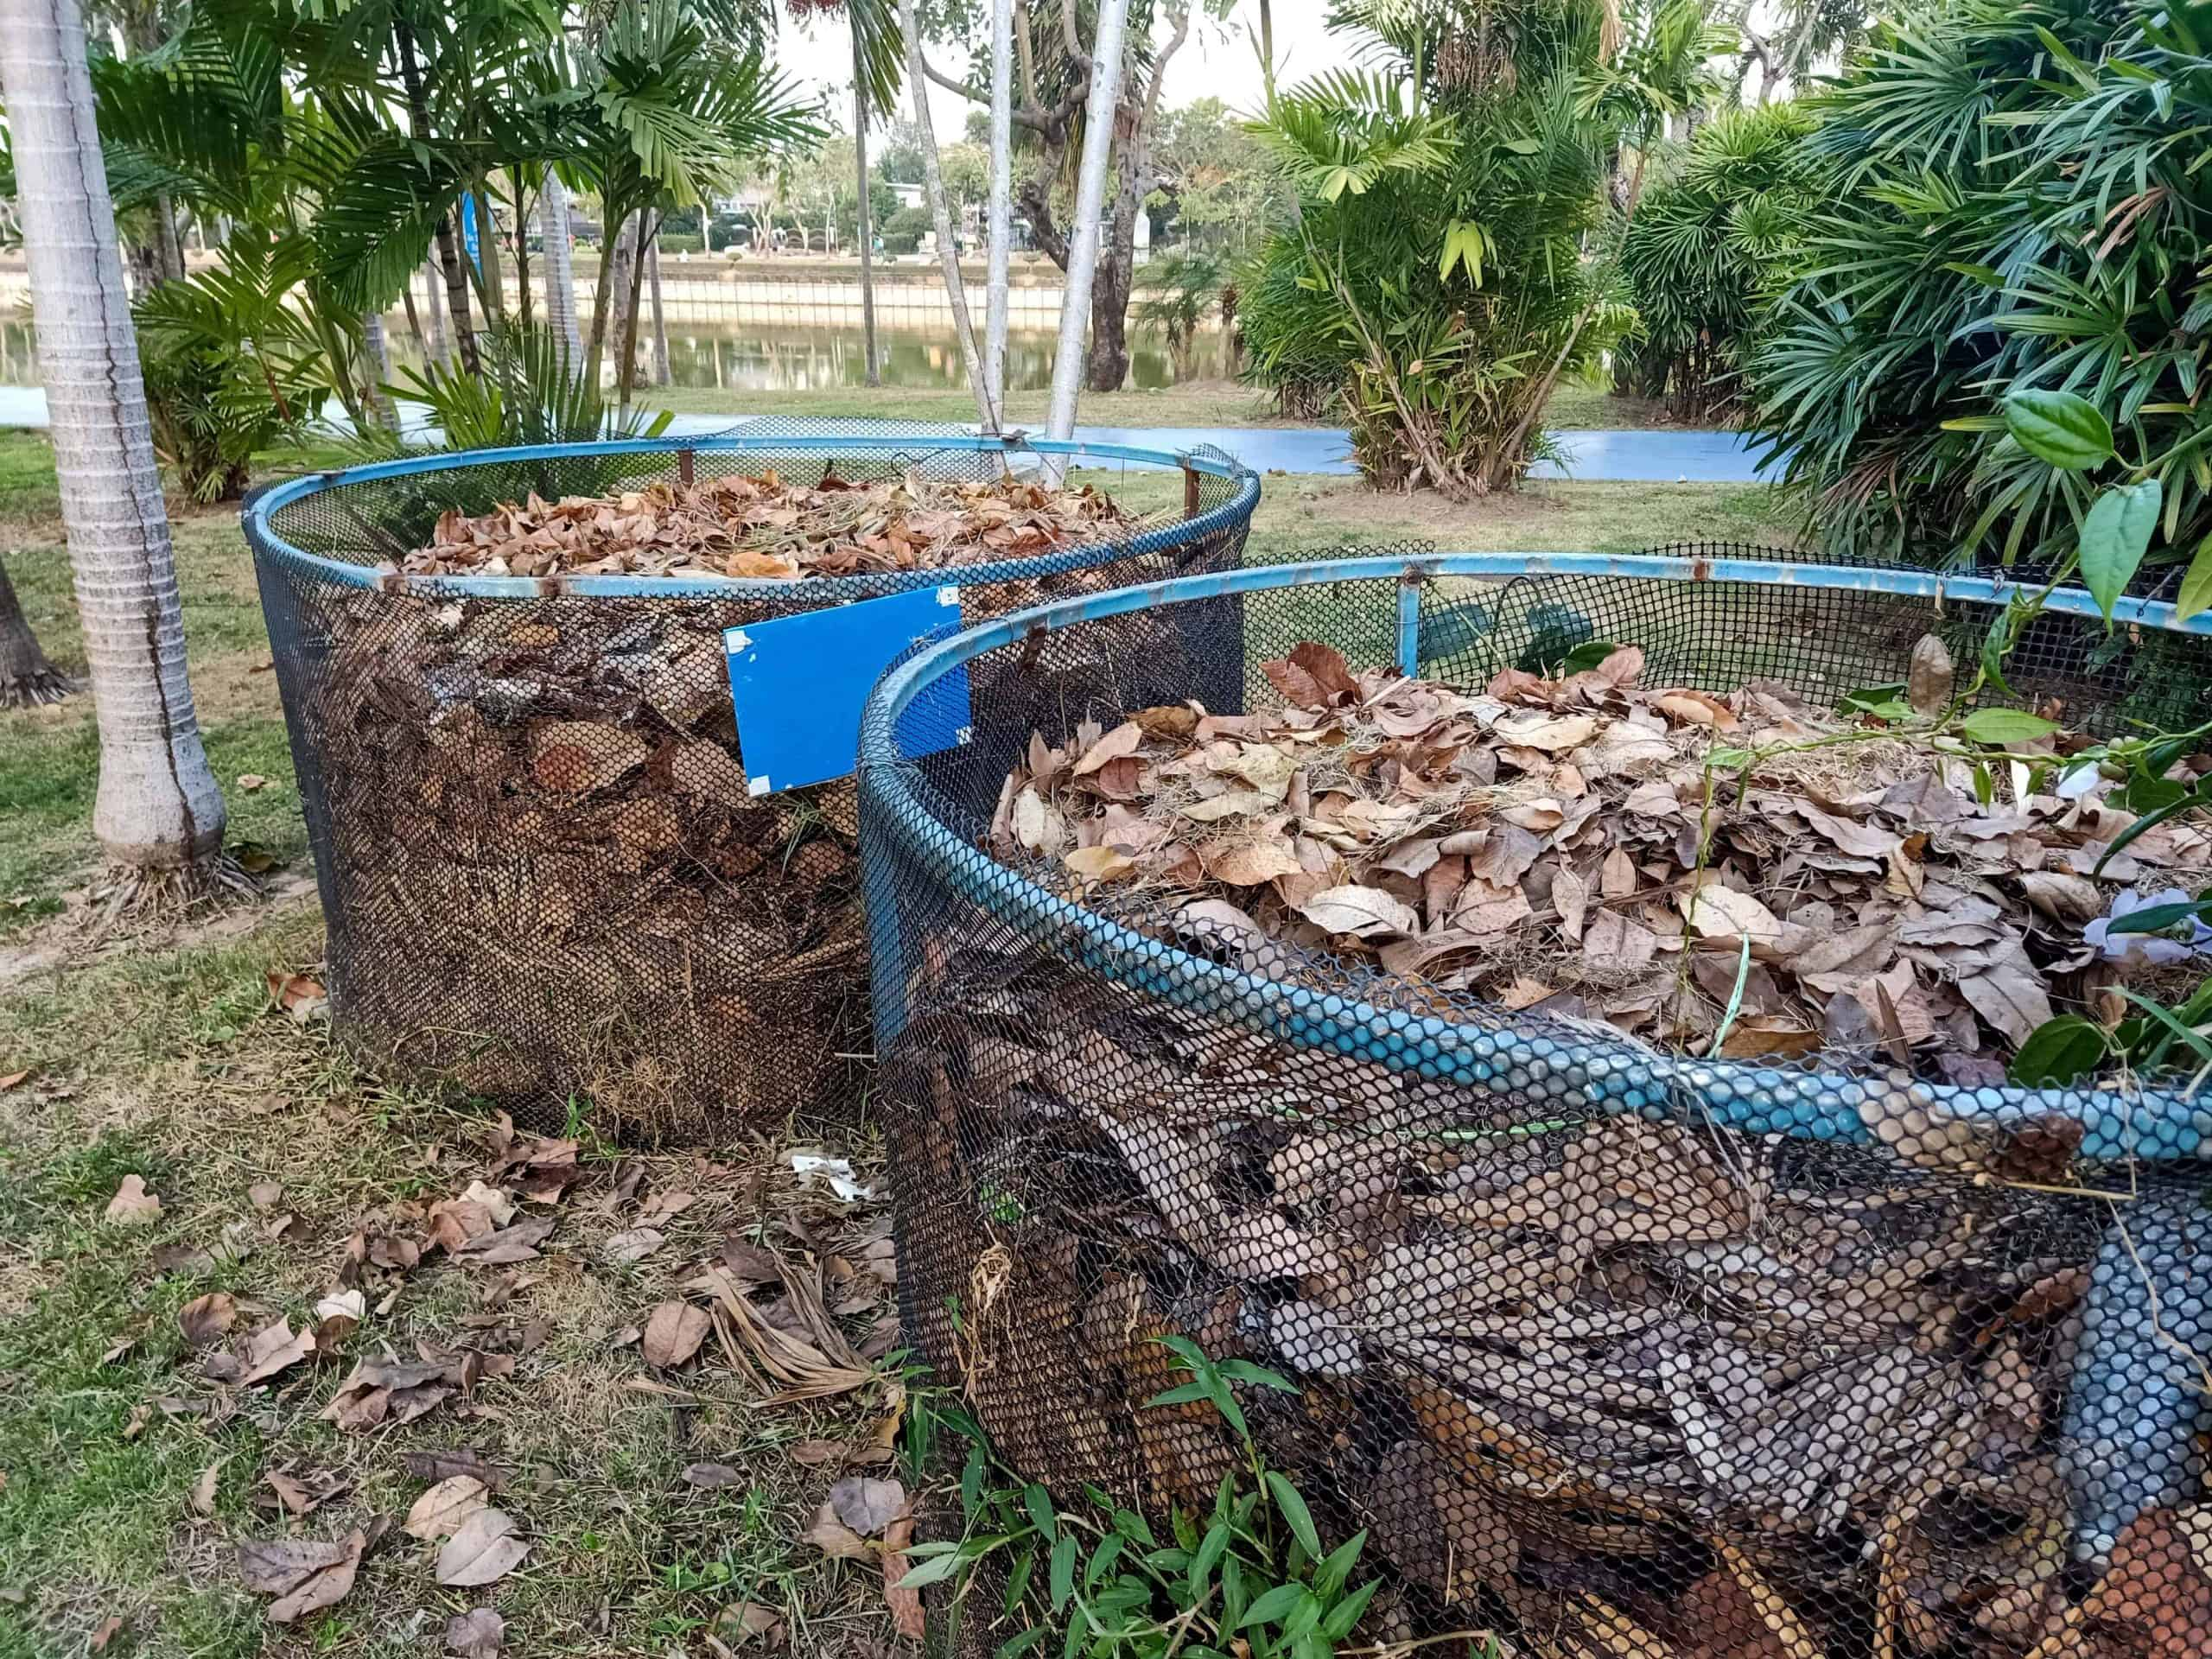 leaf mold being made in wire mesh bins